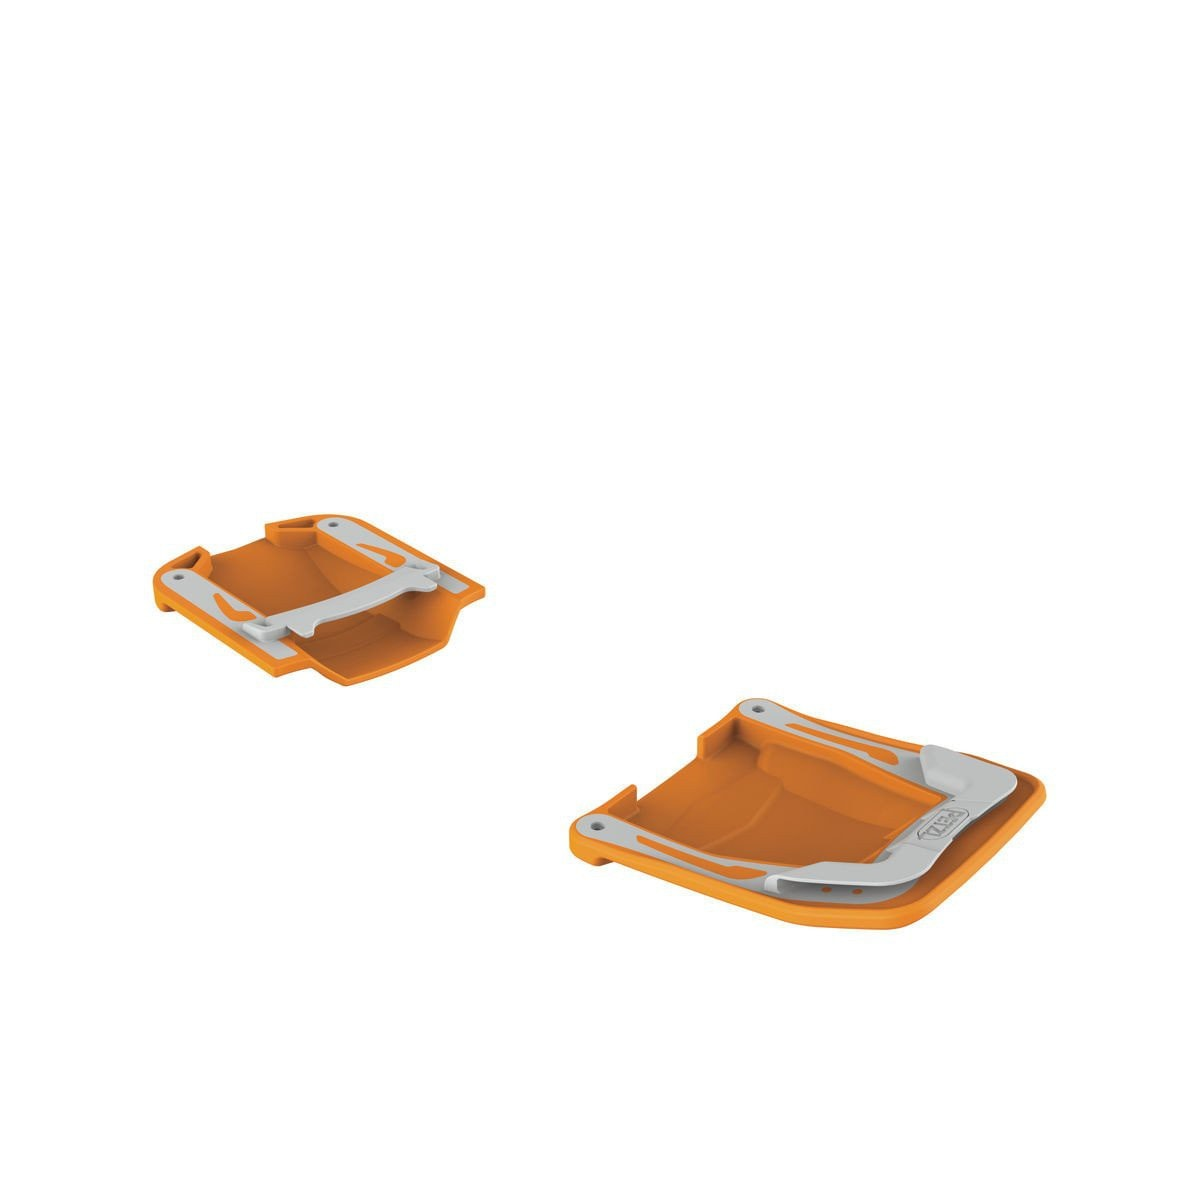 Petzl Irvis Antisnow (AB Plates), shown as a pair in orange colour